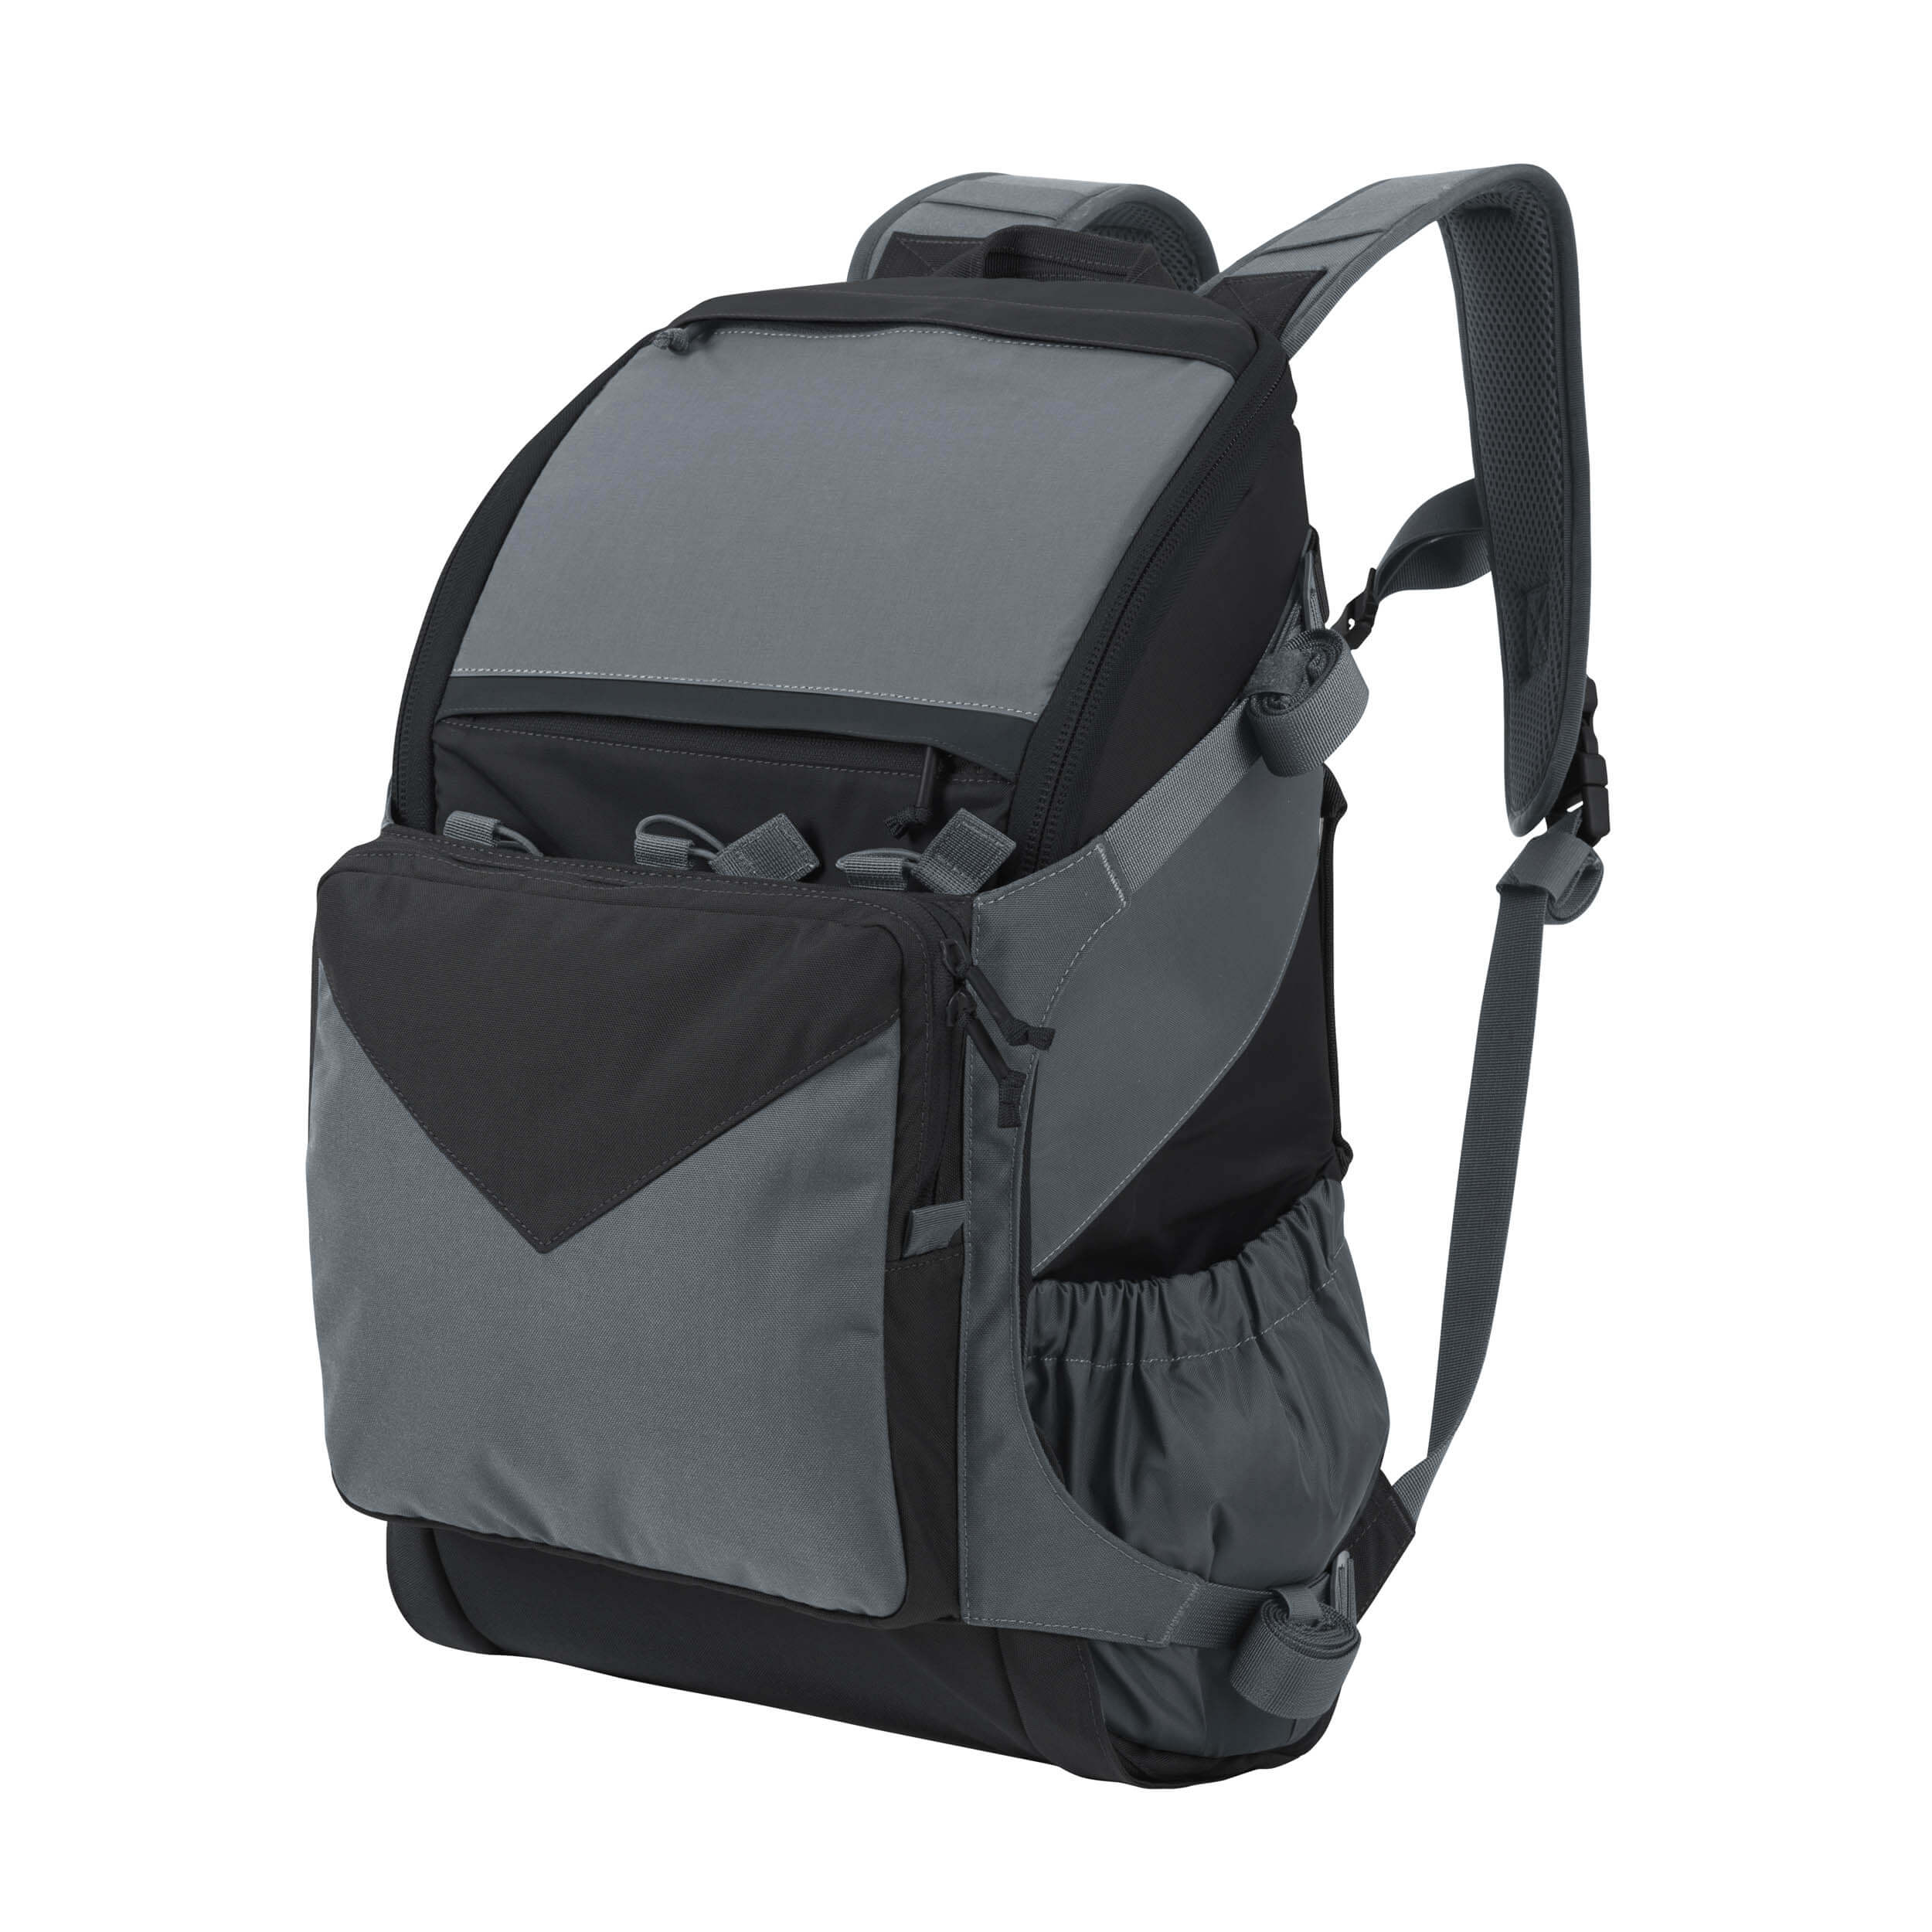 Helikon-Tex BAIL OUT BAG Rucksack -Nylon- Shadow Grey / Black A